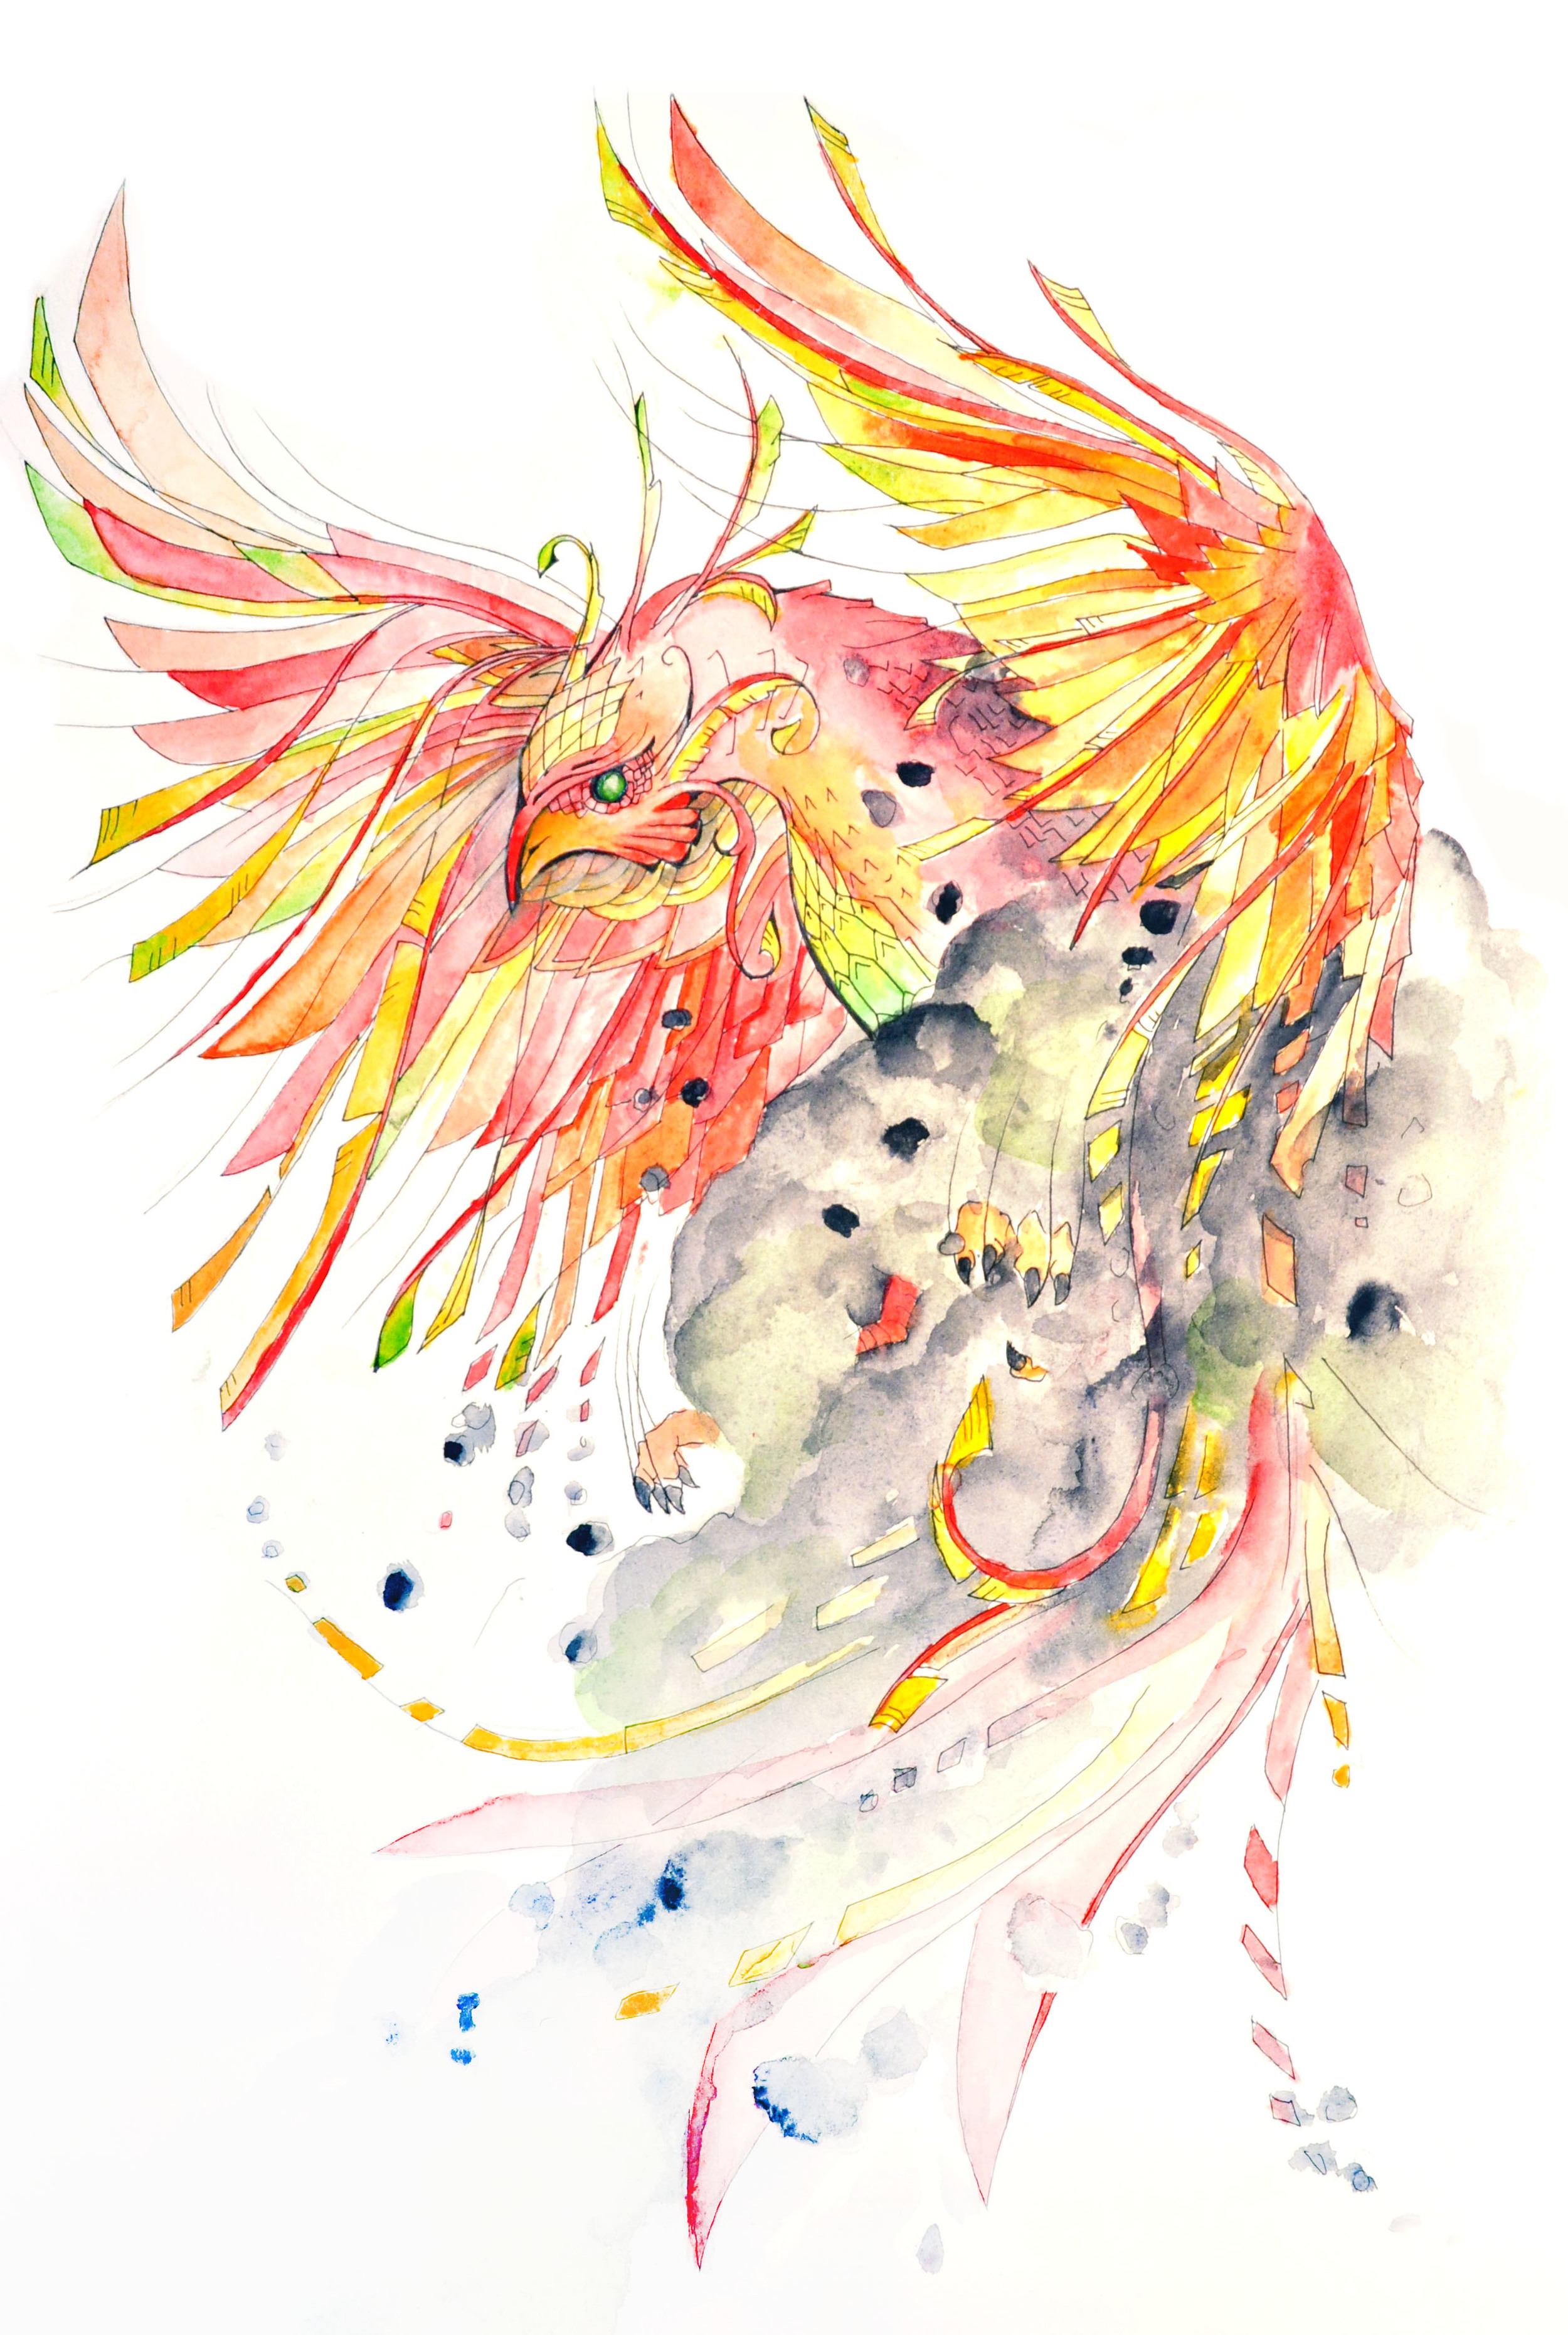 Phoenix Tattoo Design Watercolor on Paper January 2016